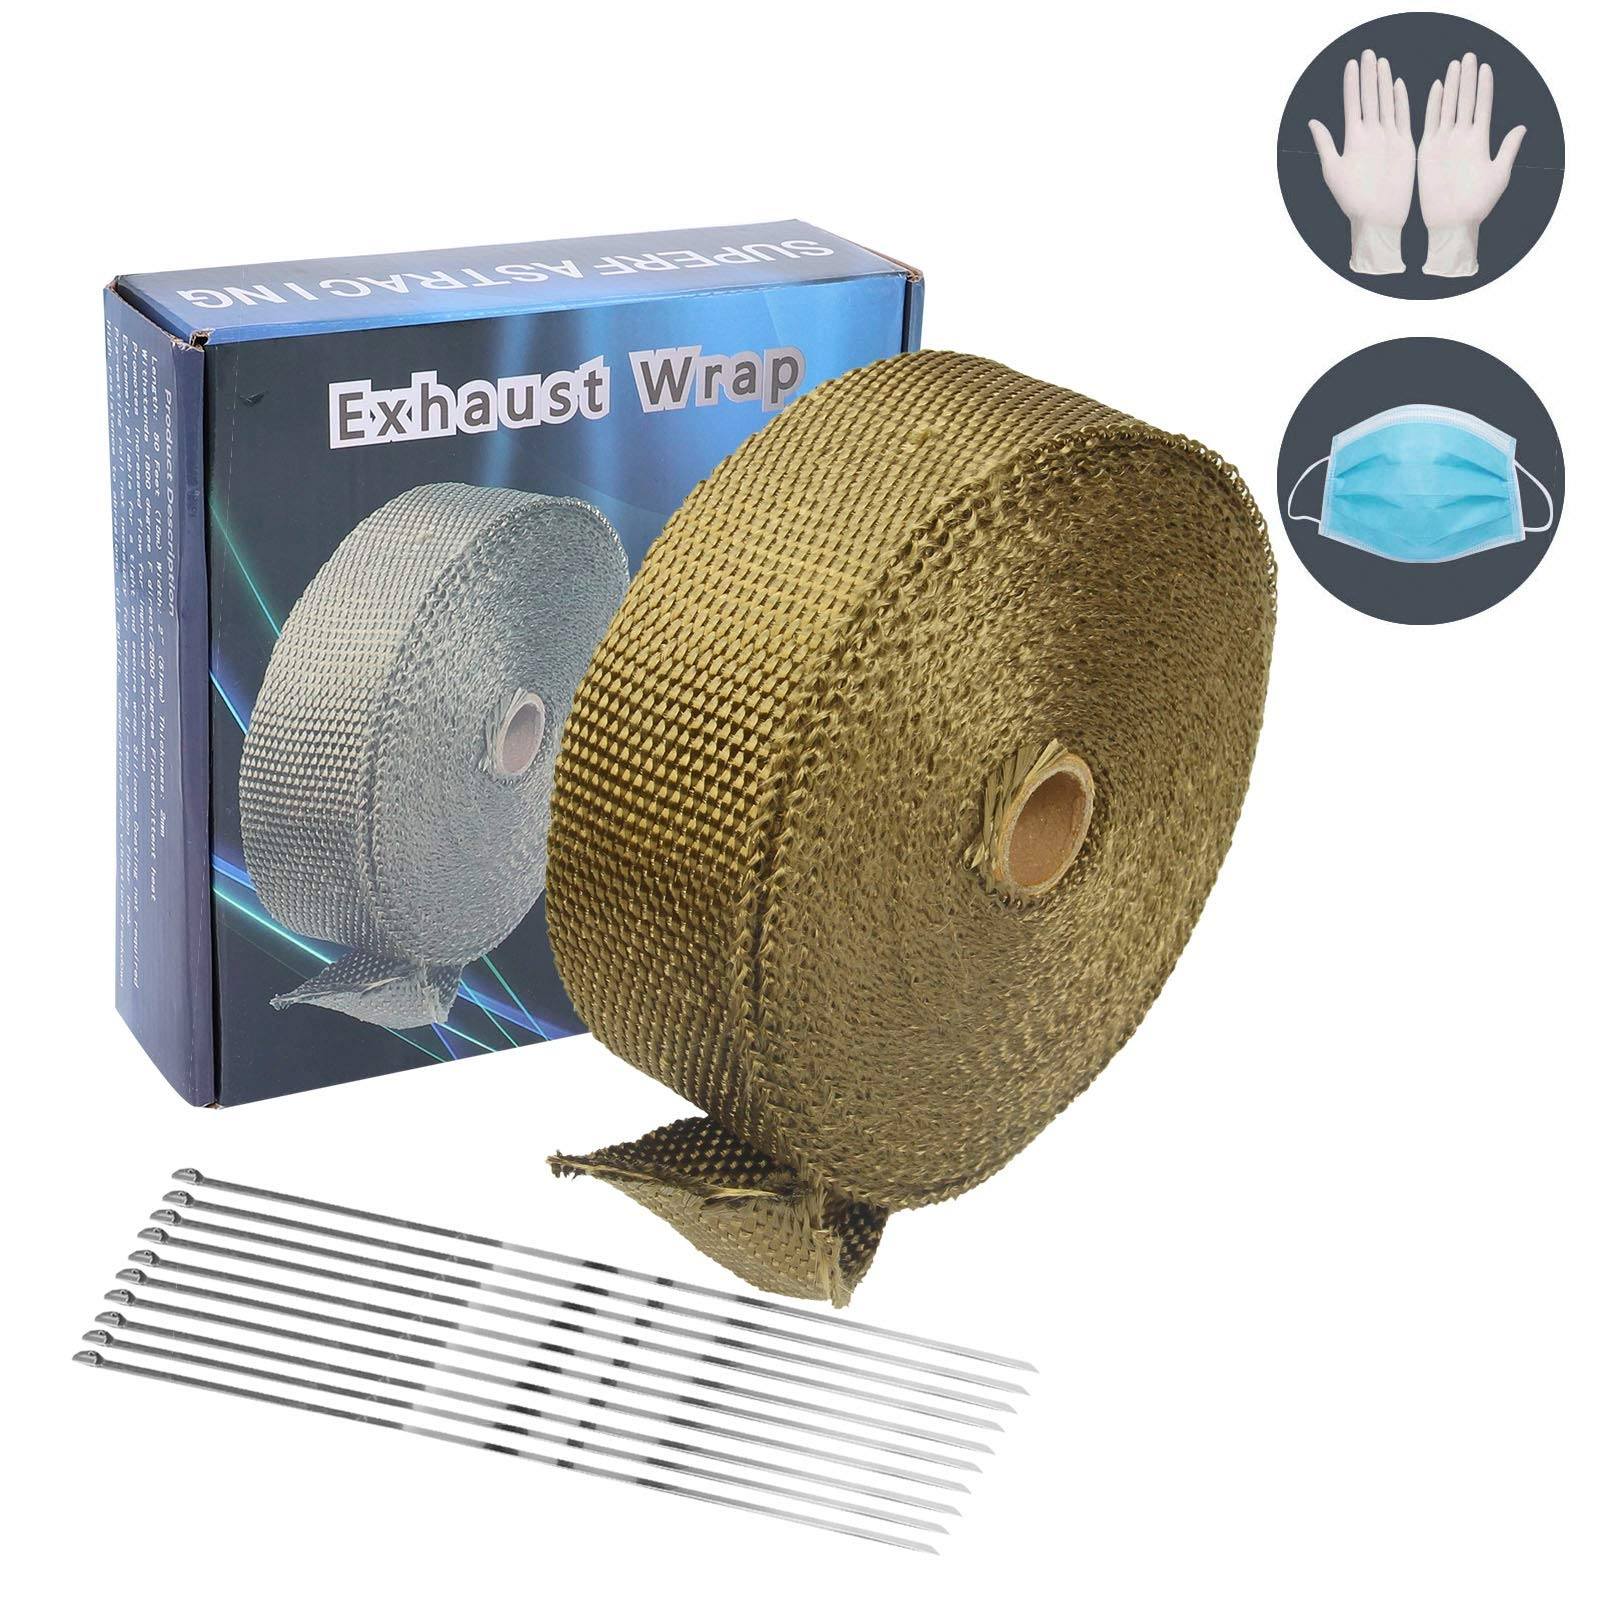 2 x 50 Titanium Exhaust Heat Wrap Roll for Motorcycle Basalt Heat Shield Tape with Stainless Ties